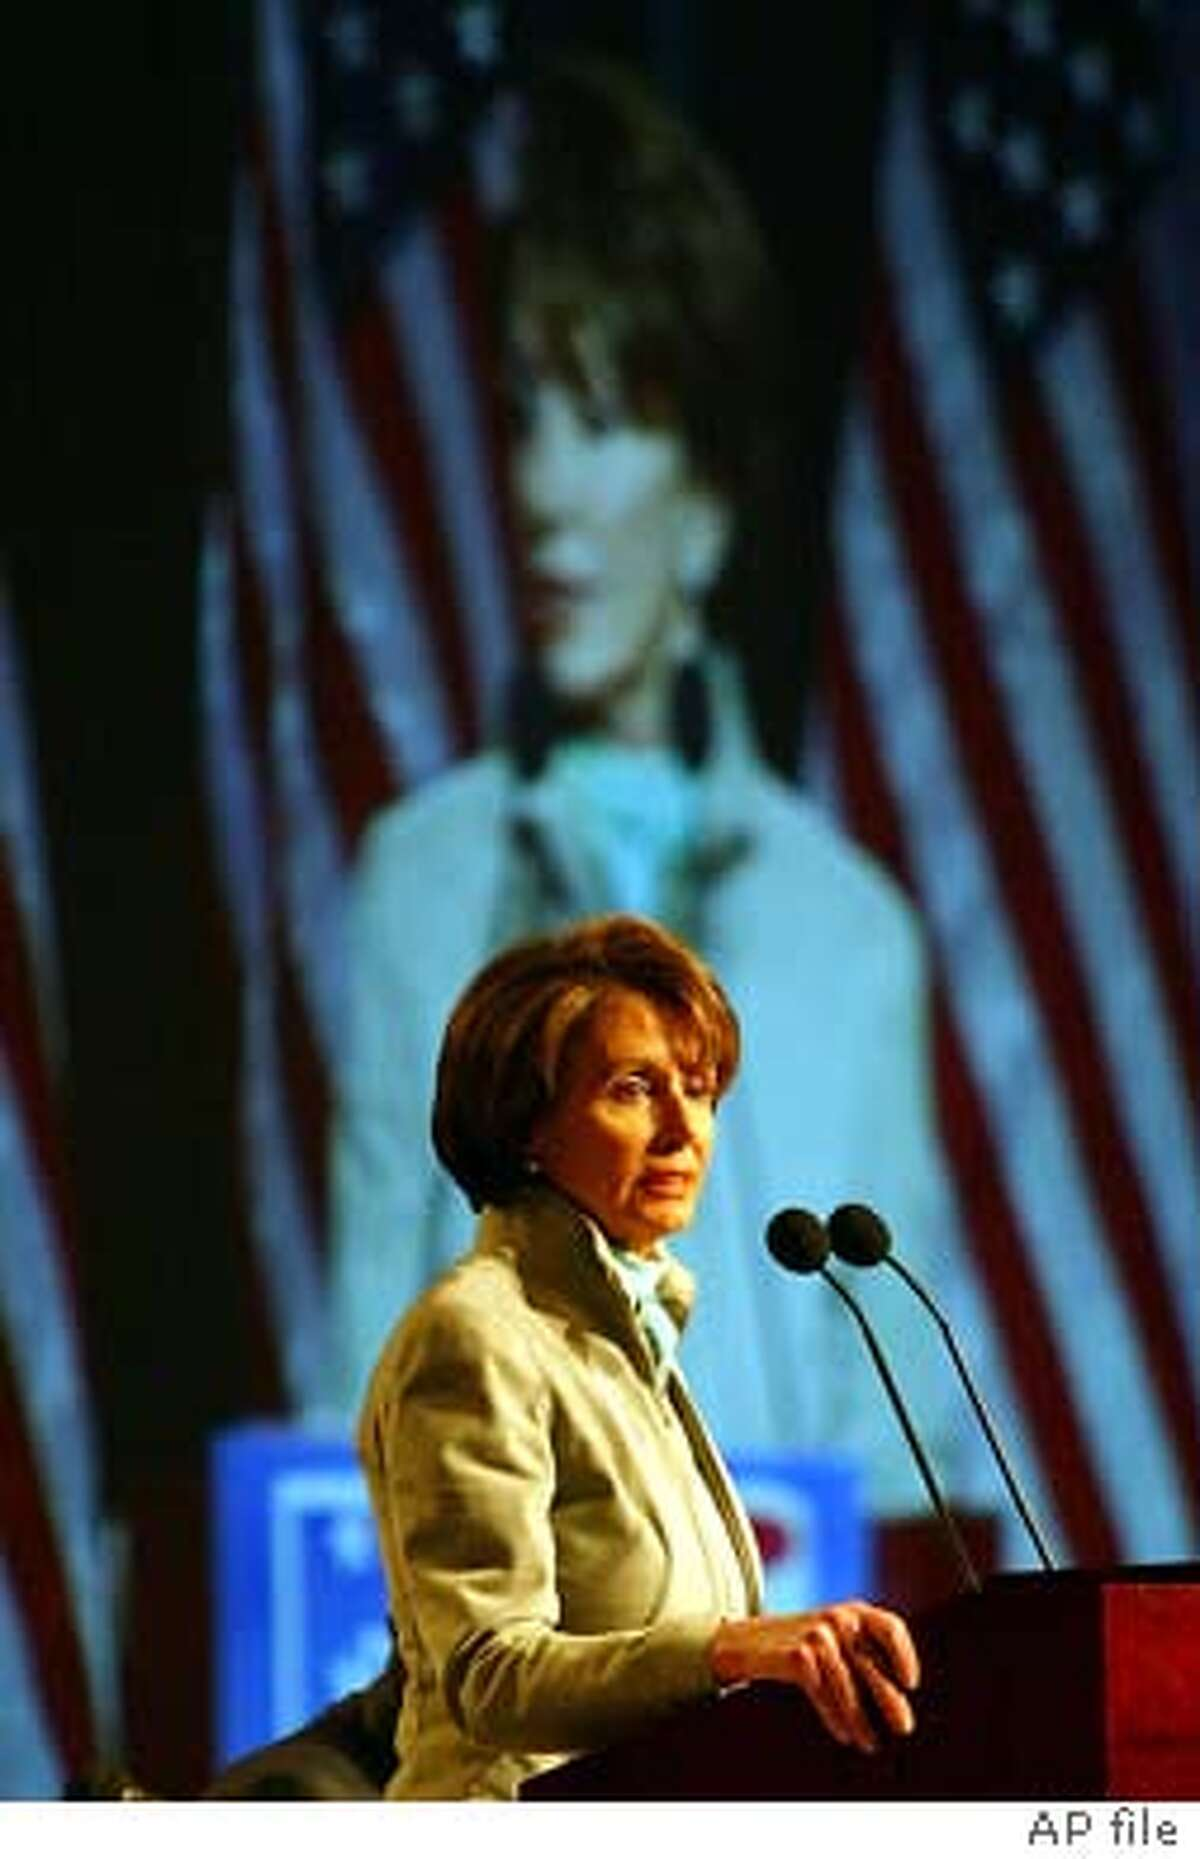 House Minority Leader Nancy Pelosi, D-Calif., addresses the Democratic National Committee at the party's winter meeting in Washington, Friday, Feb. 21. 2003. The Democratic National Committee held the winter meeting to discuss the 2004 presidential elections. Pelosi, one of the few speakers at the meeting who has not announced a White House bid, called on Democrats ``to expose the rhetorical gap between George Bush's lofty rhetoric and the harsh reality of his policies.'' (AP Photo/Charles Dharapak) Photo caption